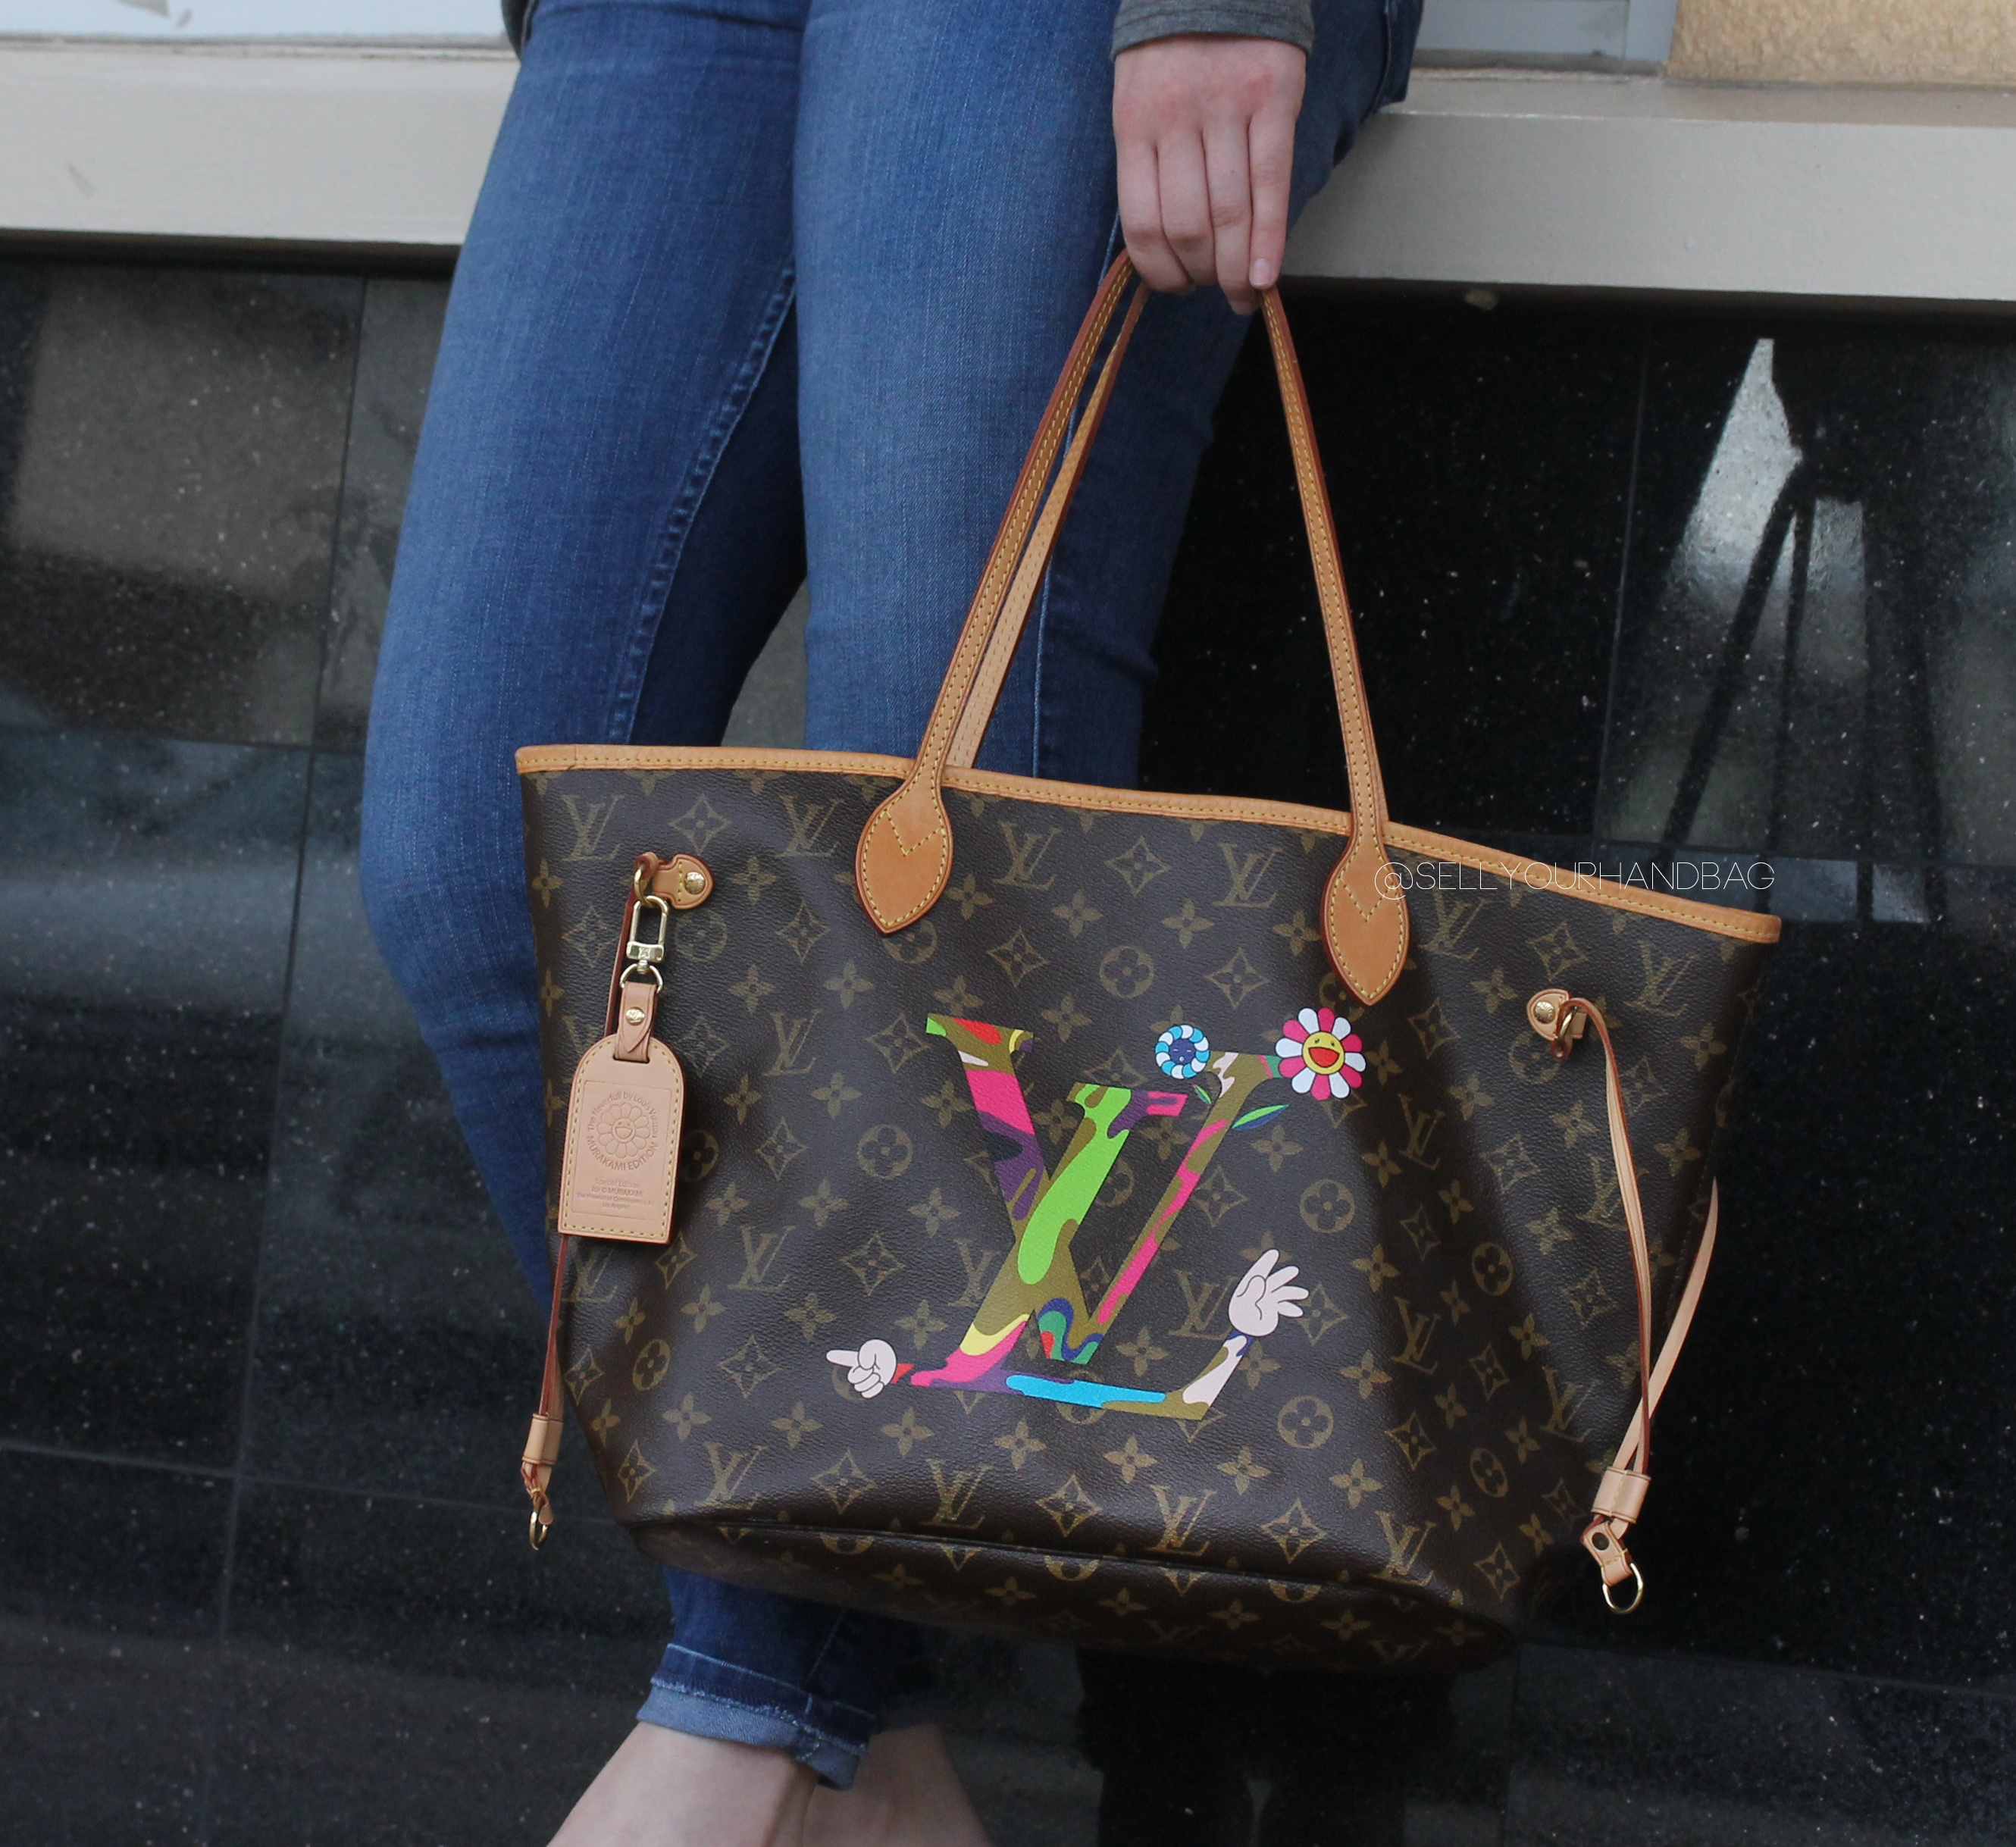 LOUIS VUITTON MURAKAMI NEVERFULL TOTE BAG BOCA RATON